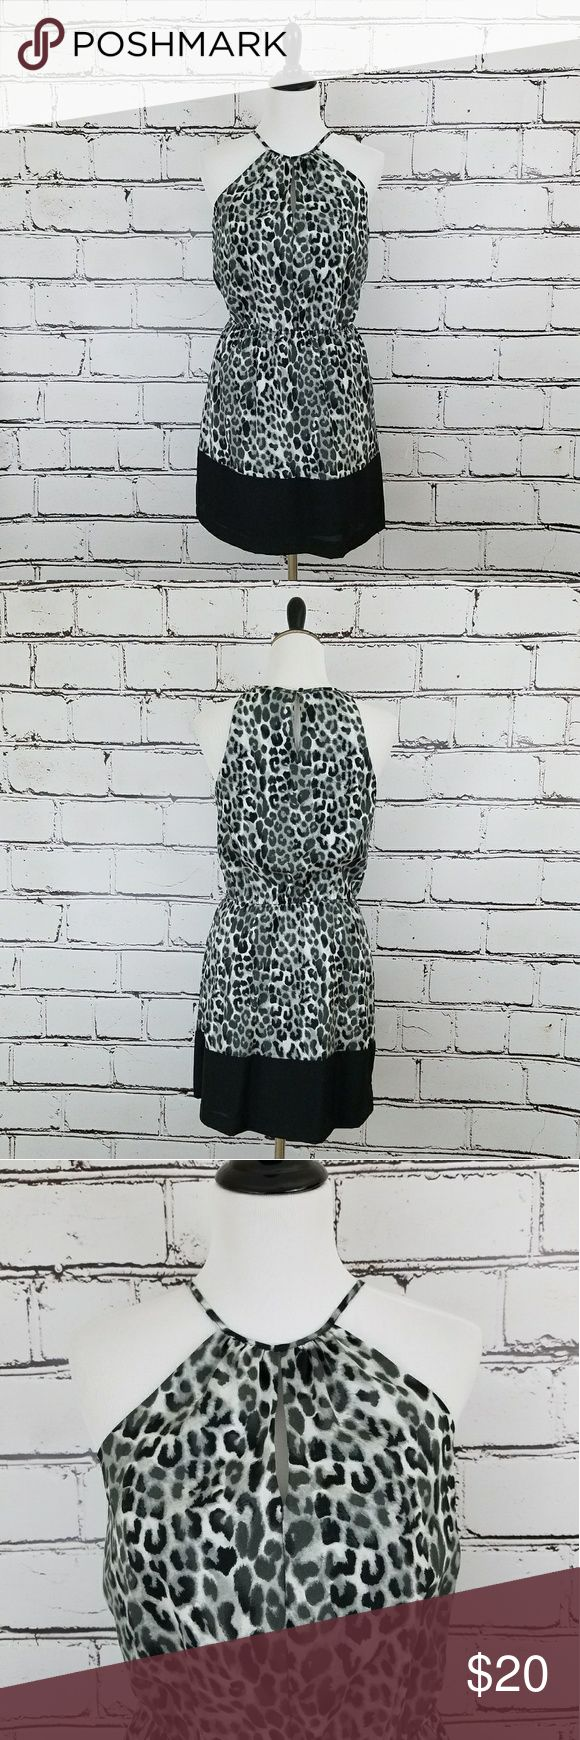 Express Cheetah Print Dress! Black, white and gray colored cheetah print dress. Halter style neckline. Elastic waist. Length is about 36 inches and armpit to armpit is about 17 inches. Like new condition! Express Dresses